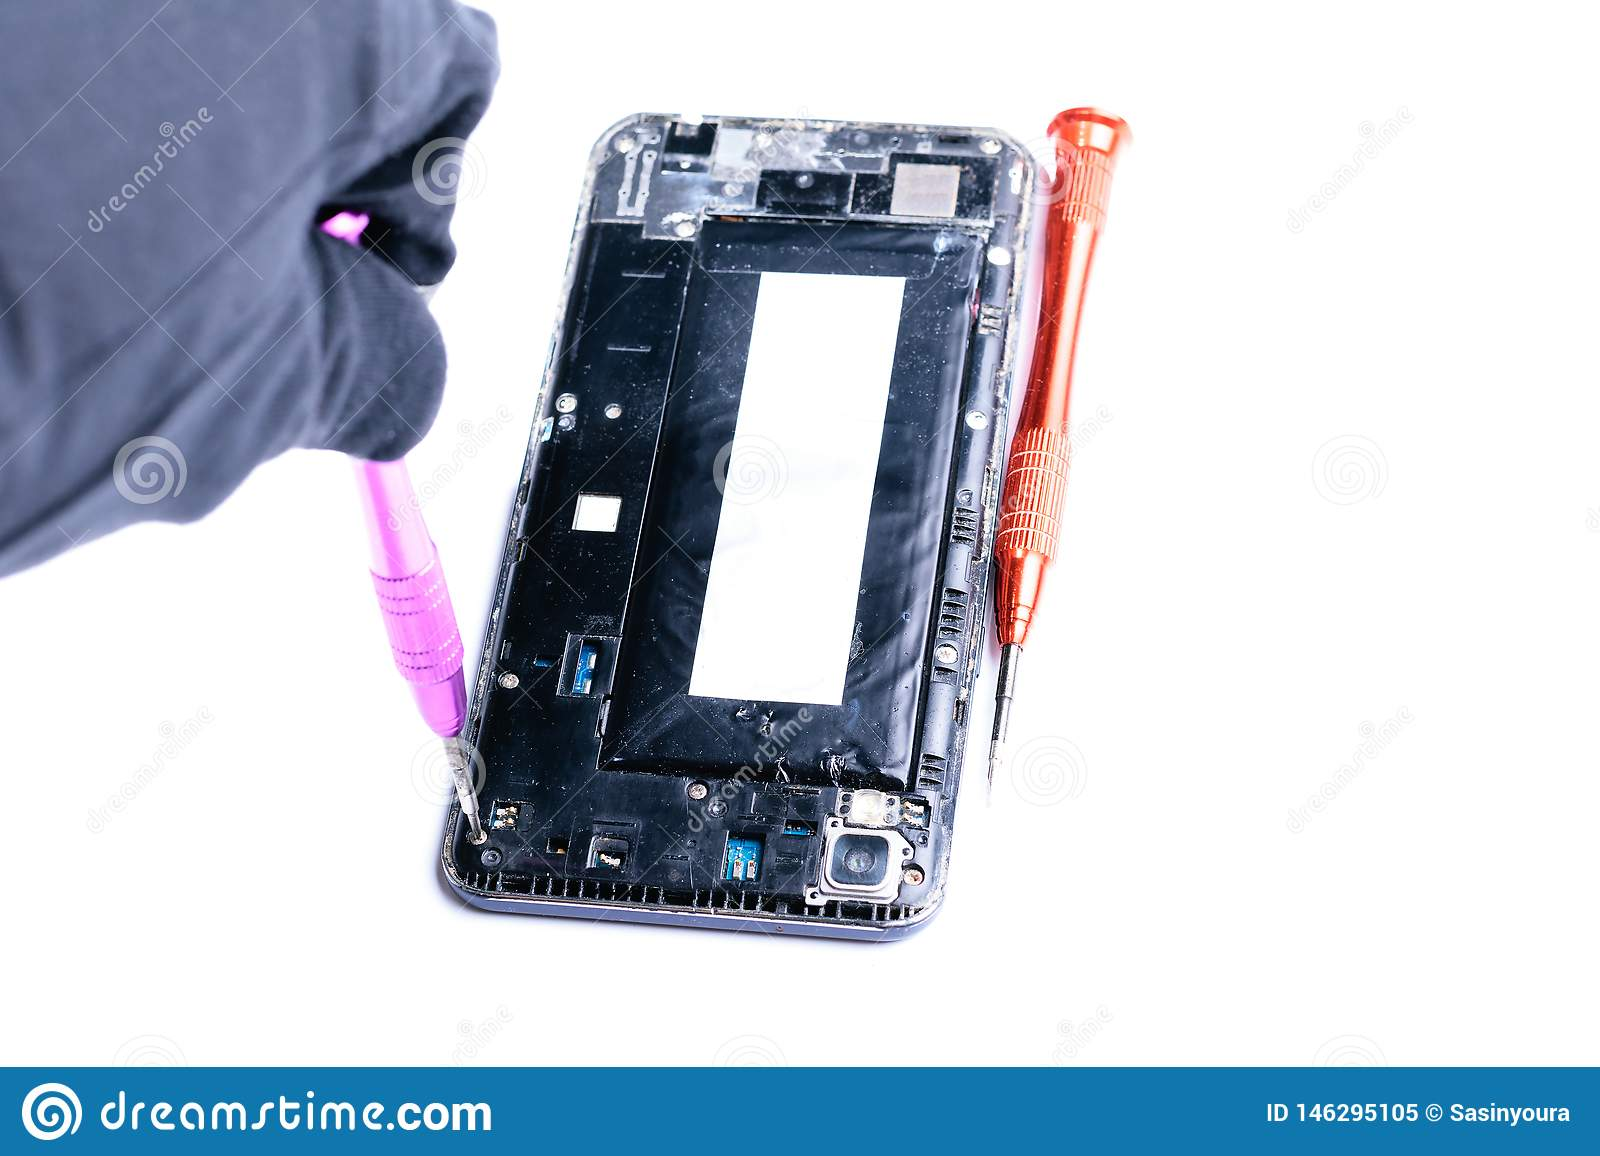 Photos showing the process of repairing a broken mobile phone with a screwdriver in the laboratory for repair of mobile equipment